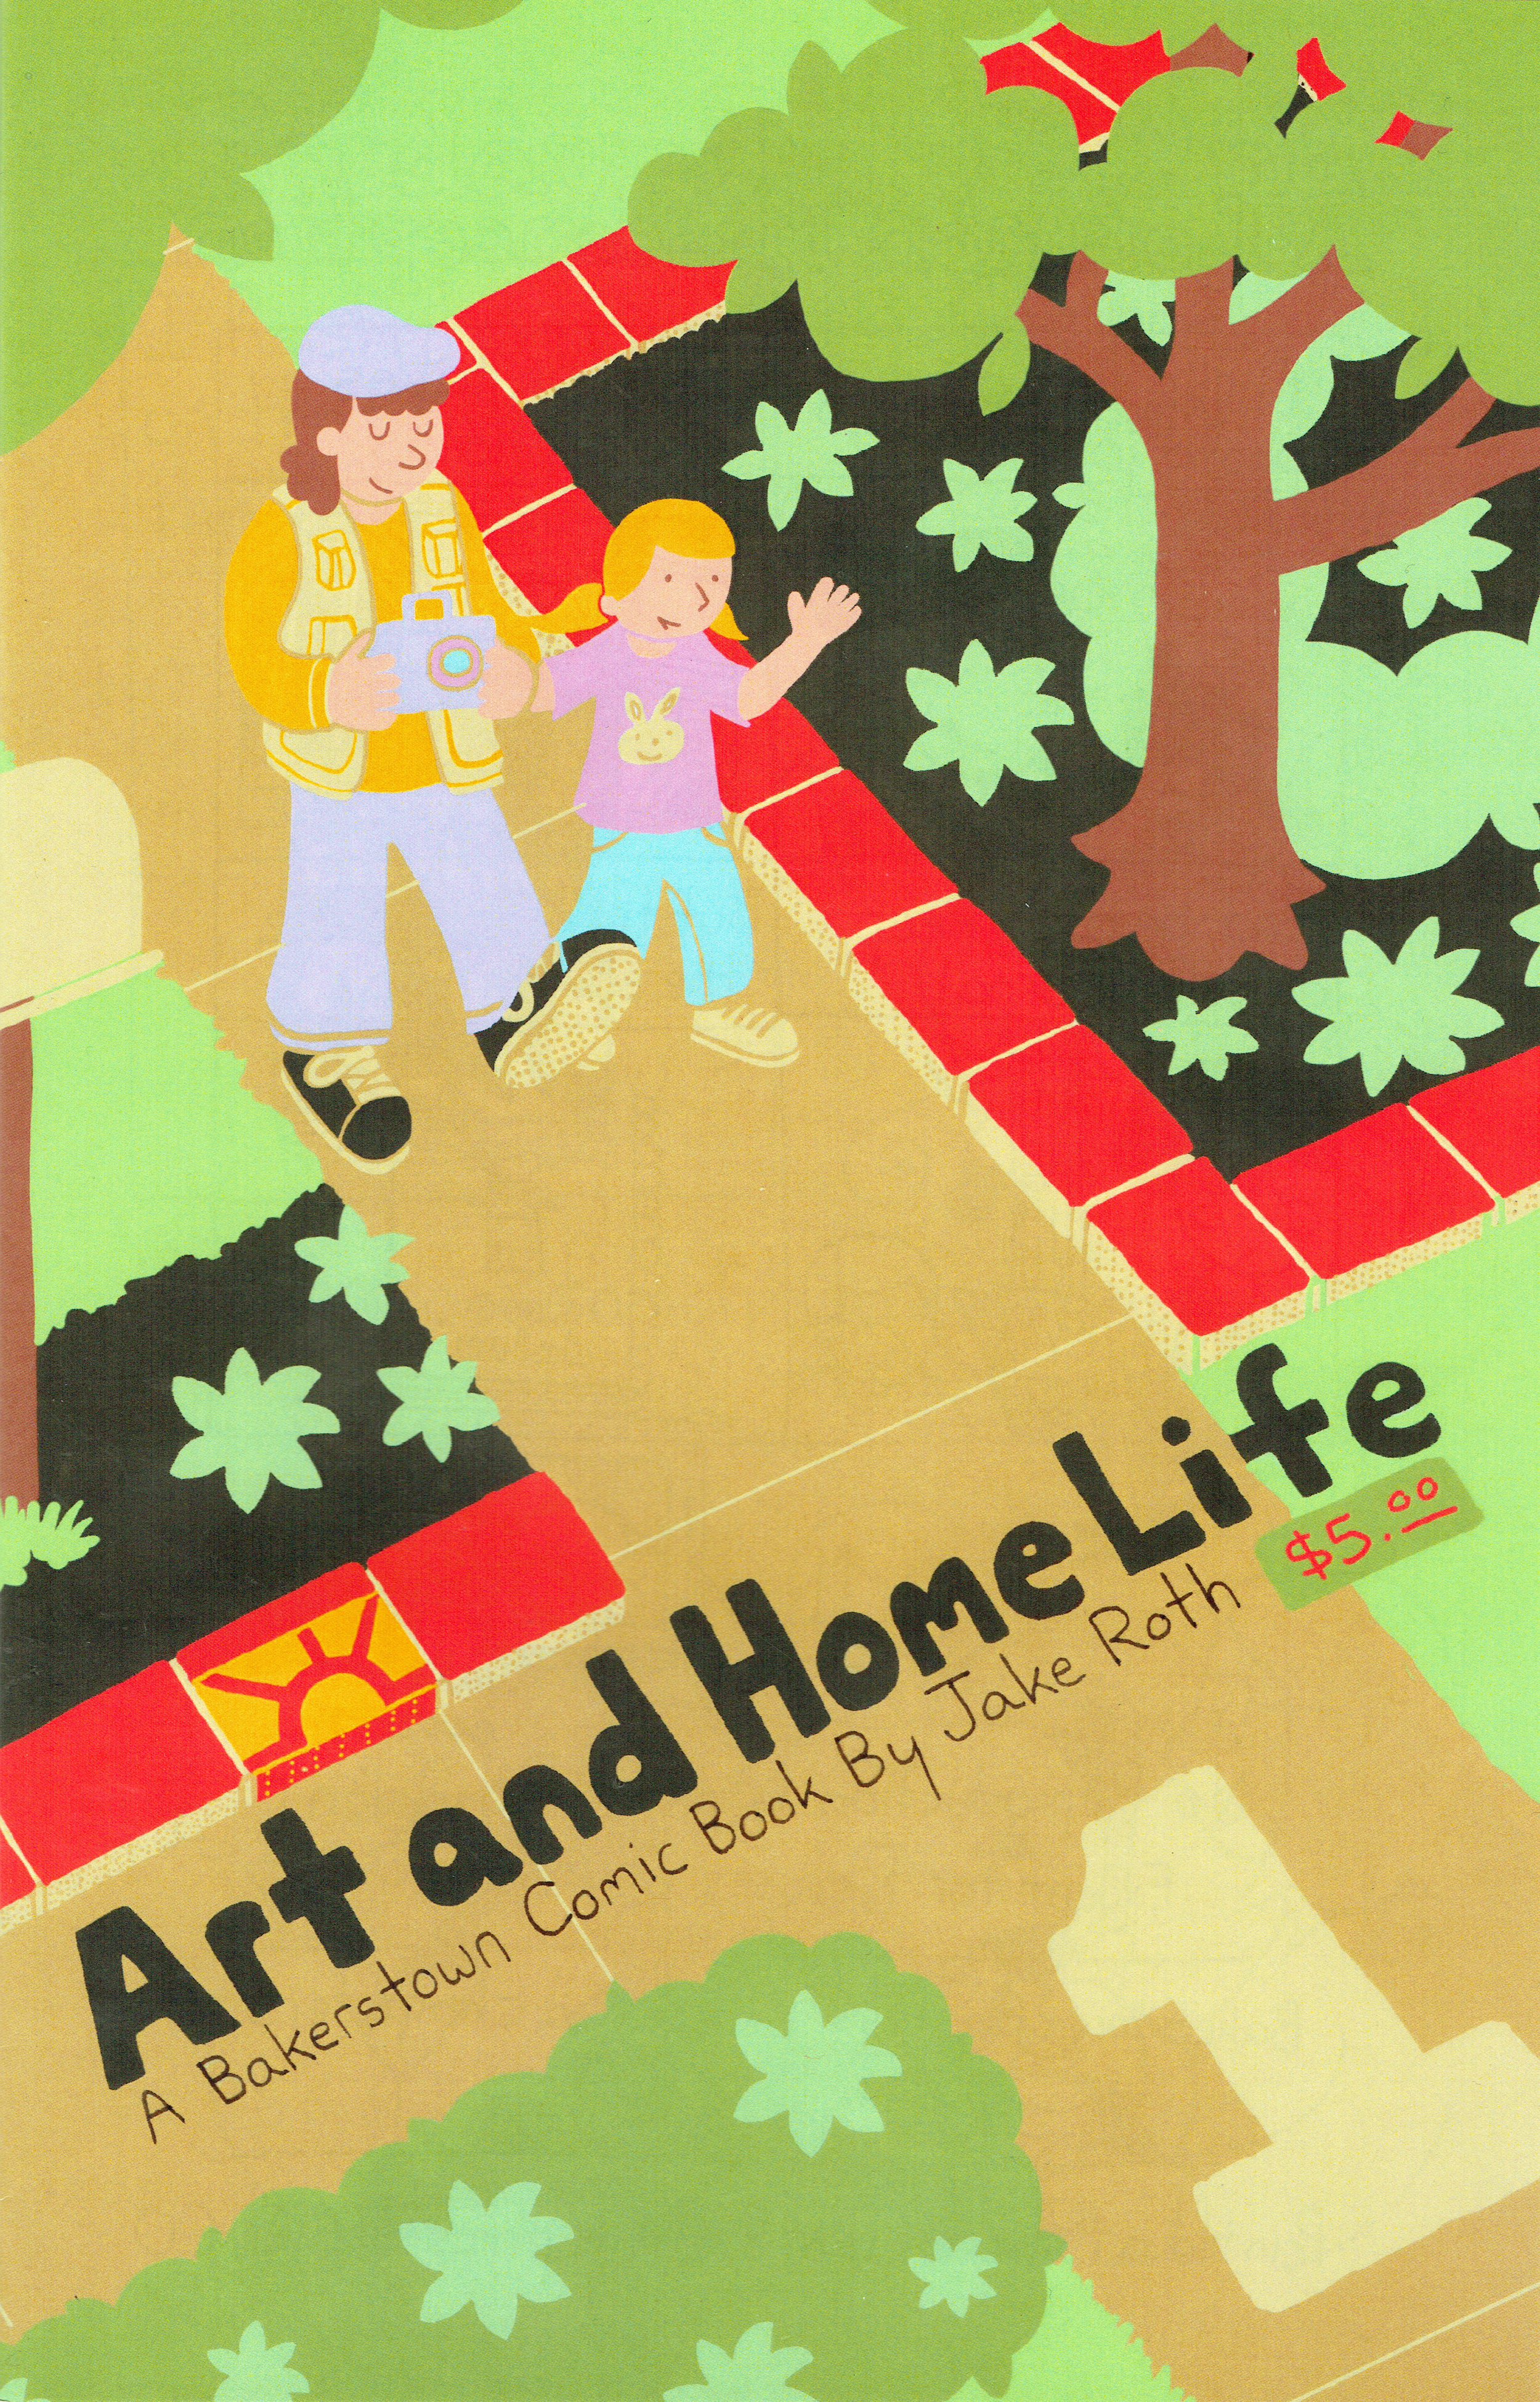 Art and Home Life #1 by Jake Roth.